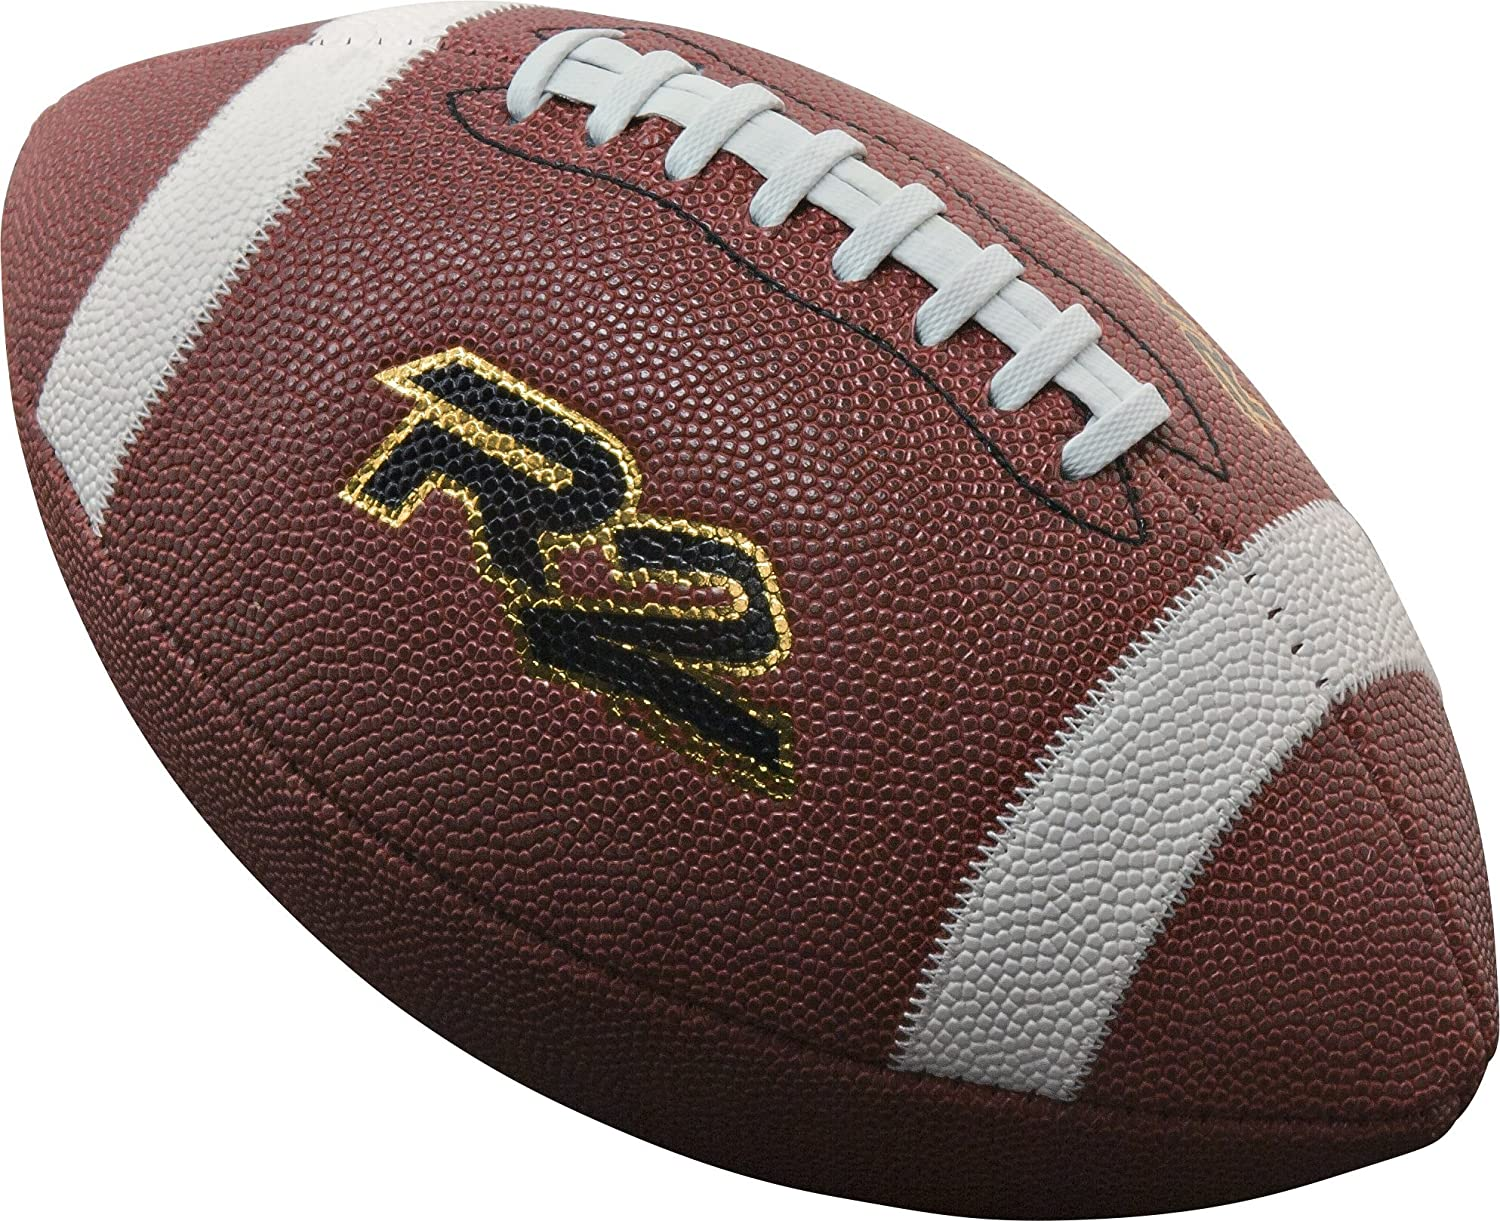 Rawlings R2 Composite Official Football, Brown Rawlings Sporting Goods R2CFB-B